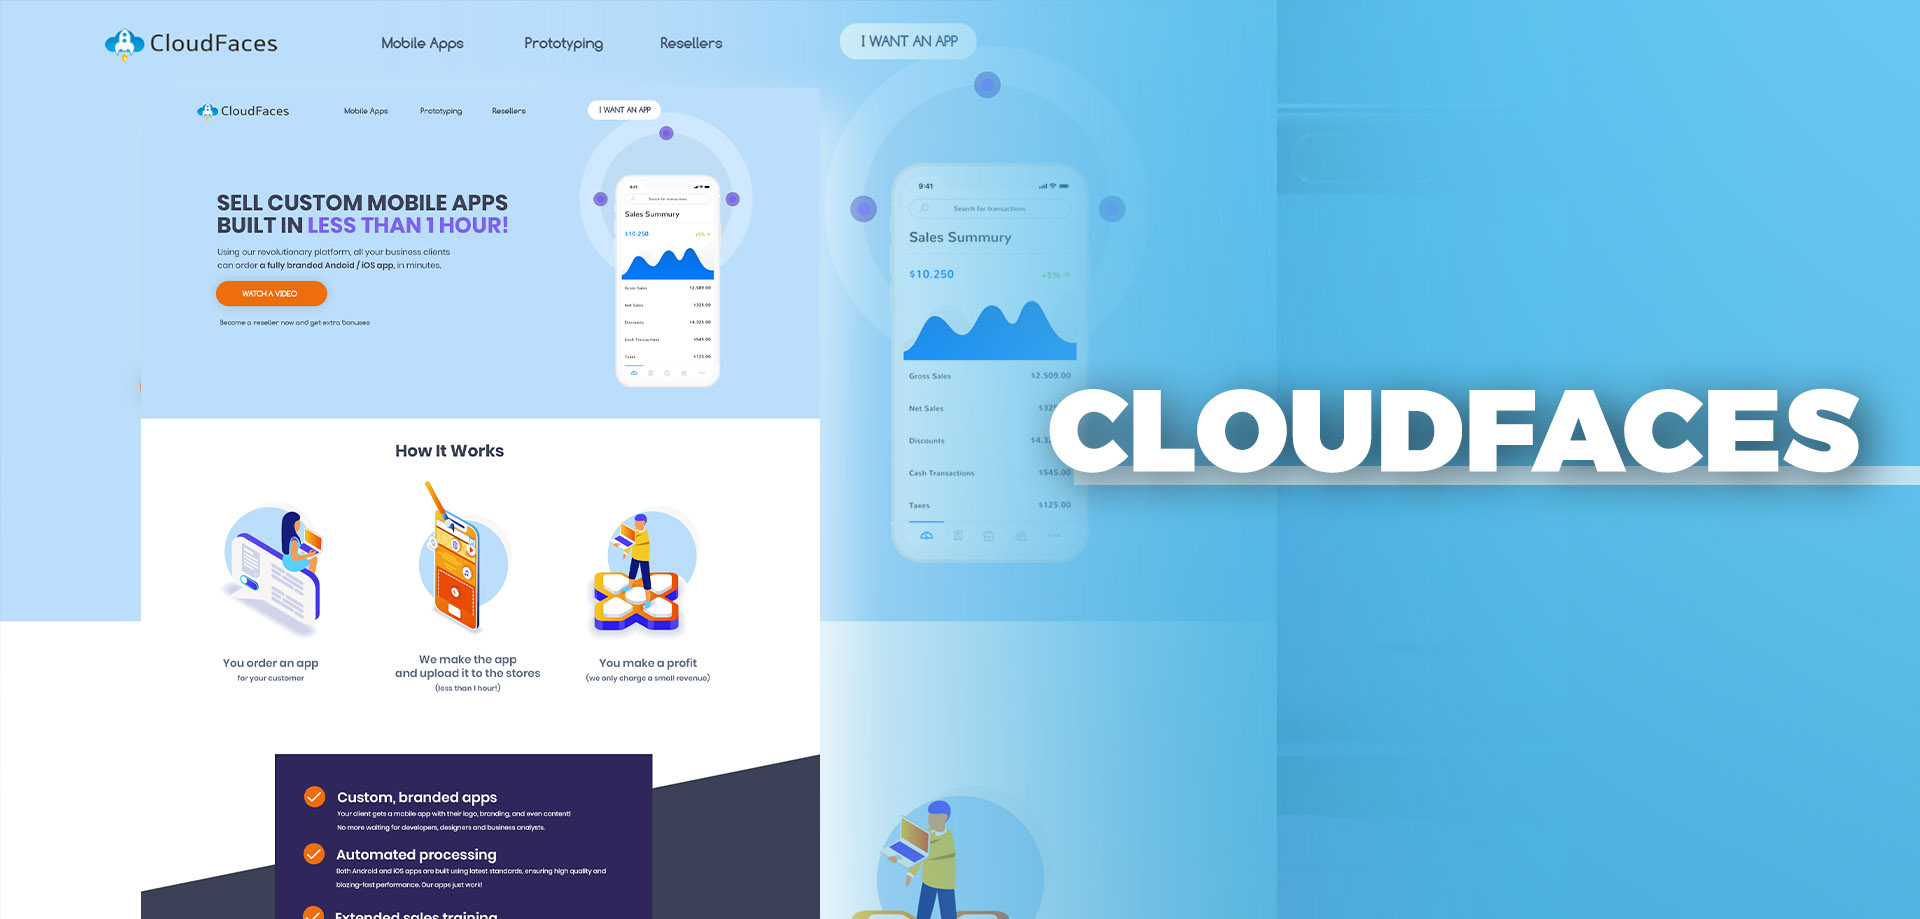 afterteam projects wordpress 11 cloudfaces 2018 banner